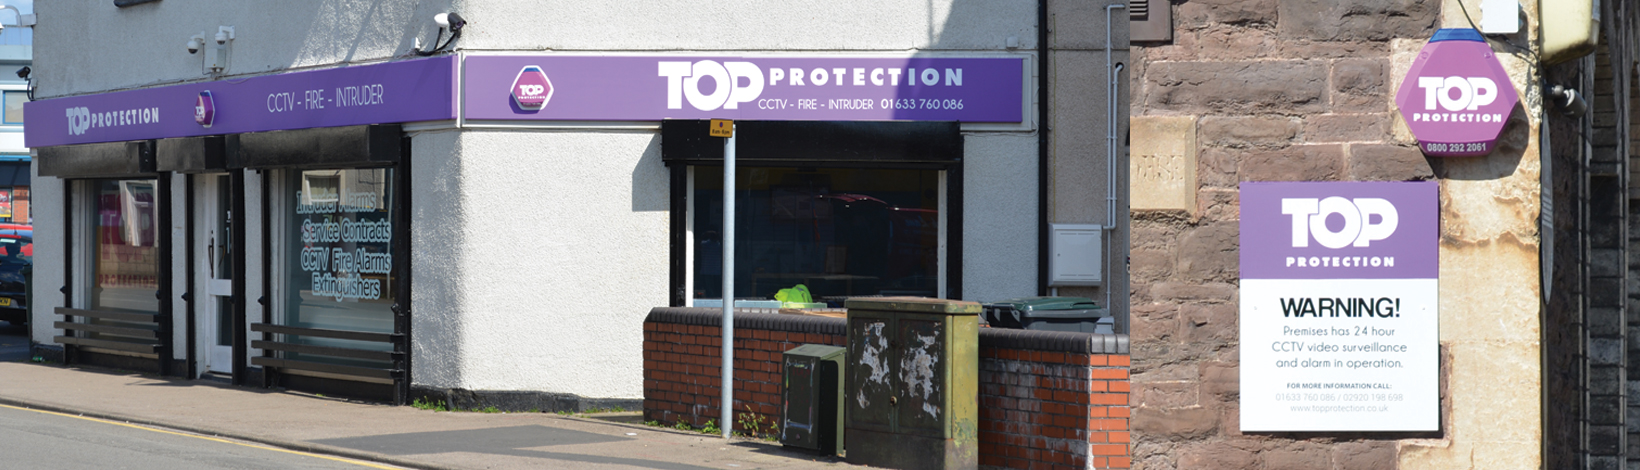 TOP Protection about us Newport